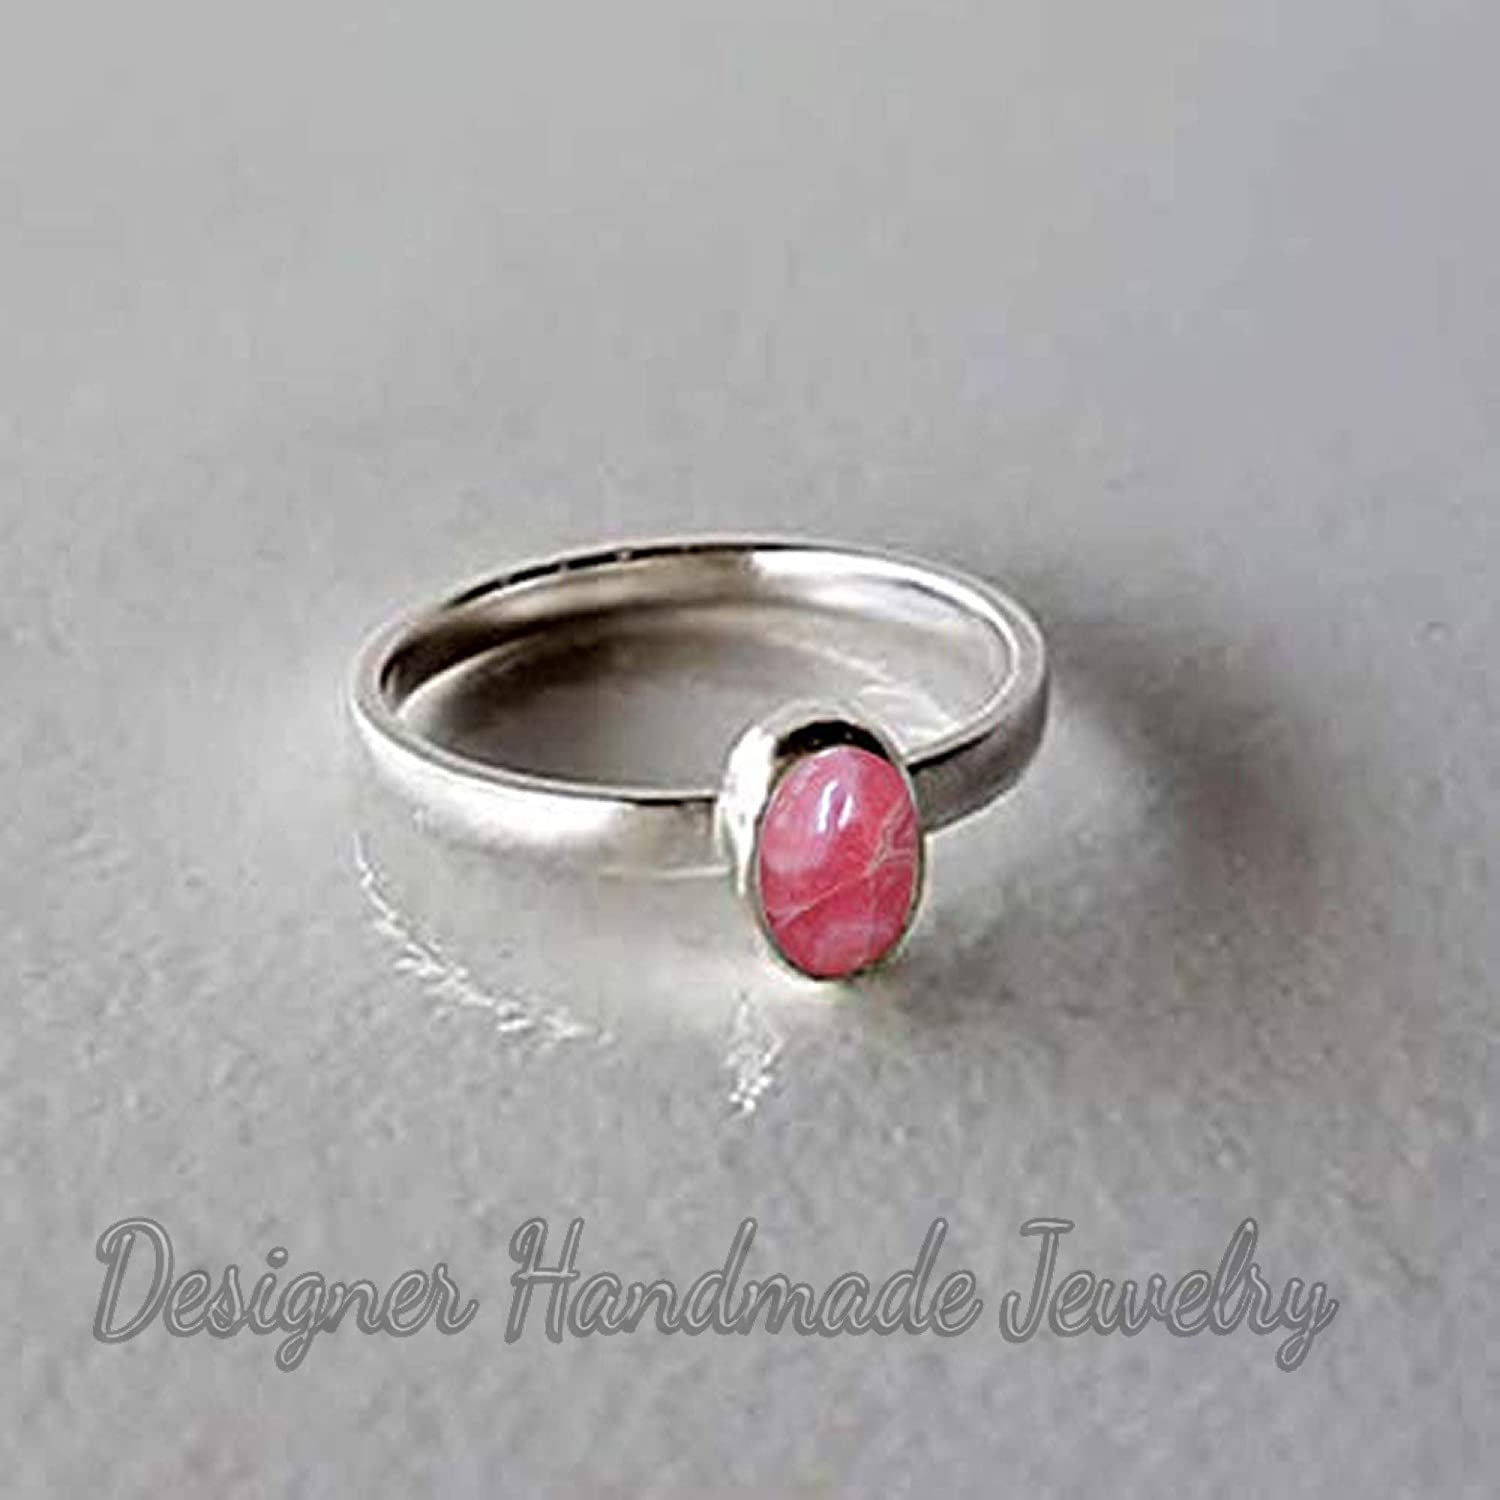 Natural Rhodochrosite Ring Womens Minimalist Ring Gift For Her Smooth Oval Gemstone Ring Anniversary Gift For Wife Metaphysical Healing Statement Ring Solid 925 Sterling Silver Handmade Ring